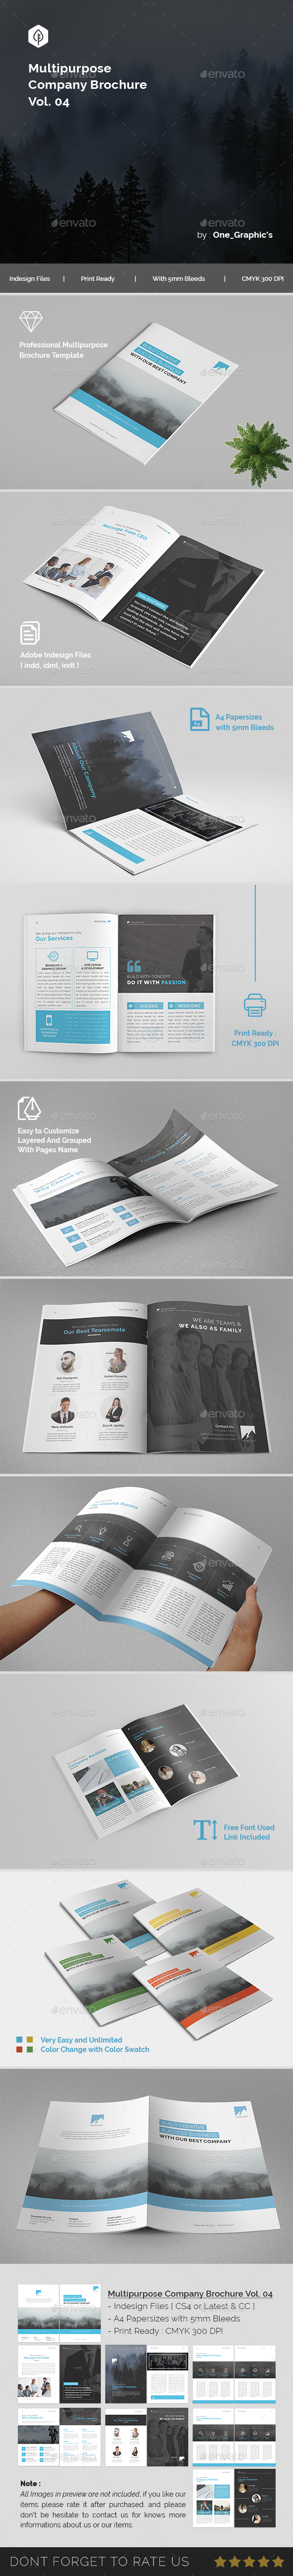 Multipurpose Corporate Brochure Template Vol. 04 - Brochures Print Templates